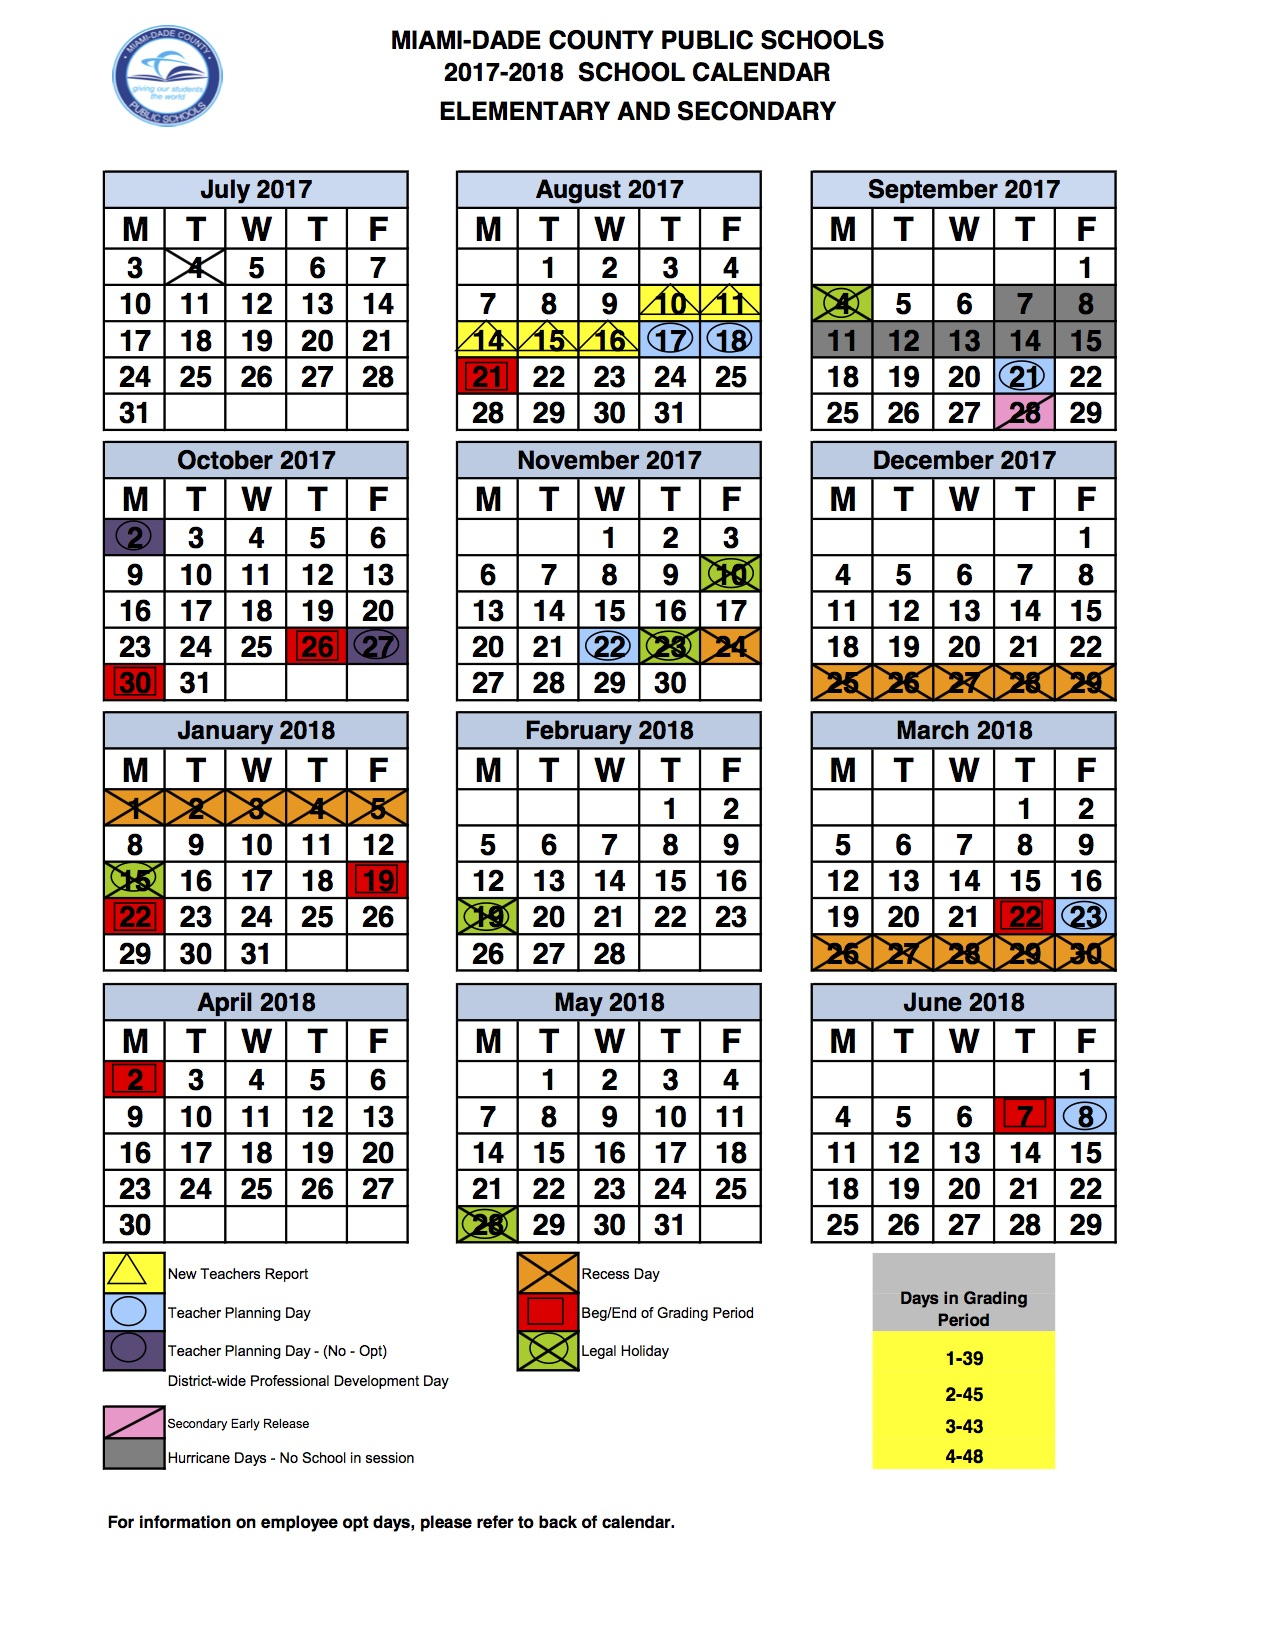 Miami Dade Calendar 2019 2017 2018 calendar   Boys & Girls Clubs of Miami Dade